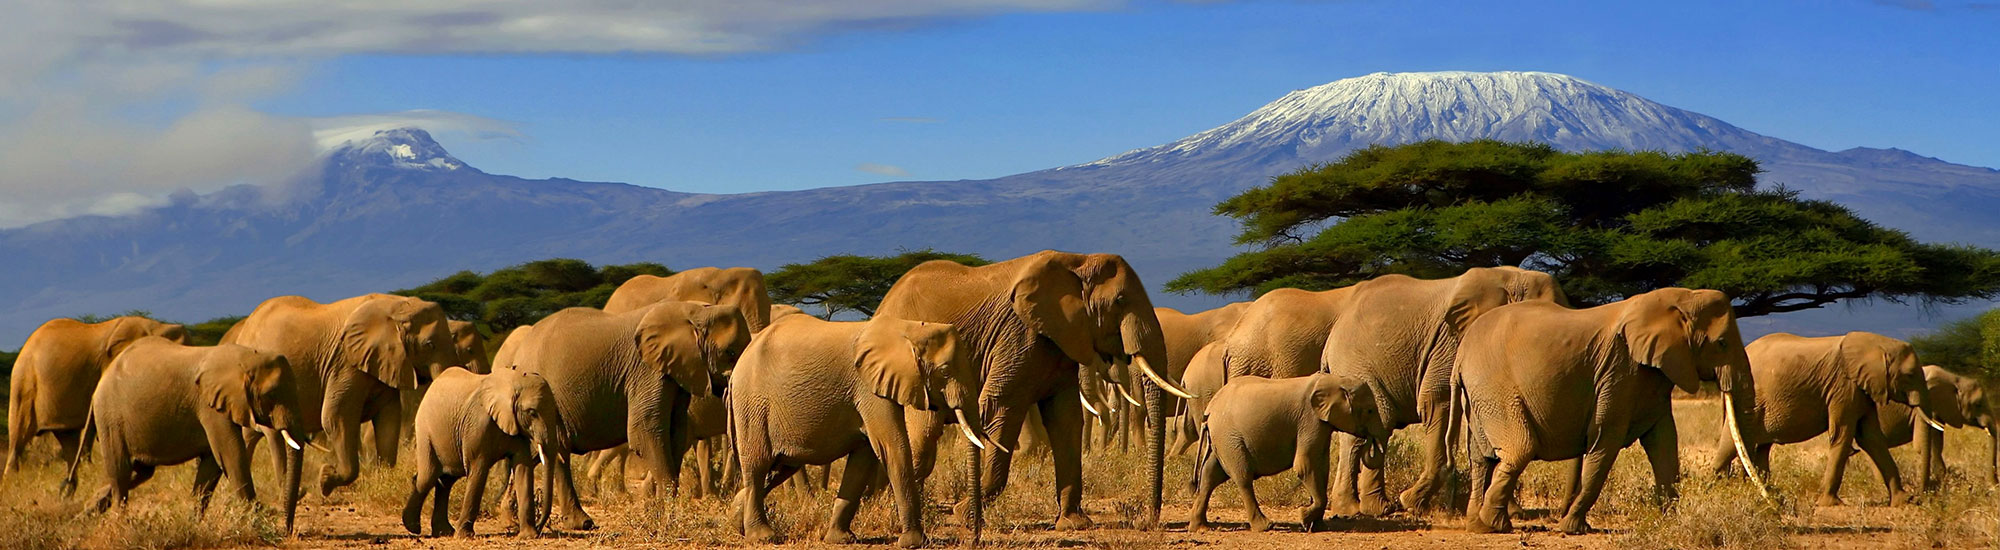 Wildlife Preservation - Elephants